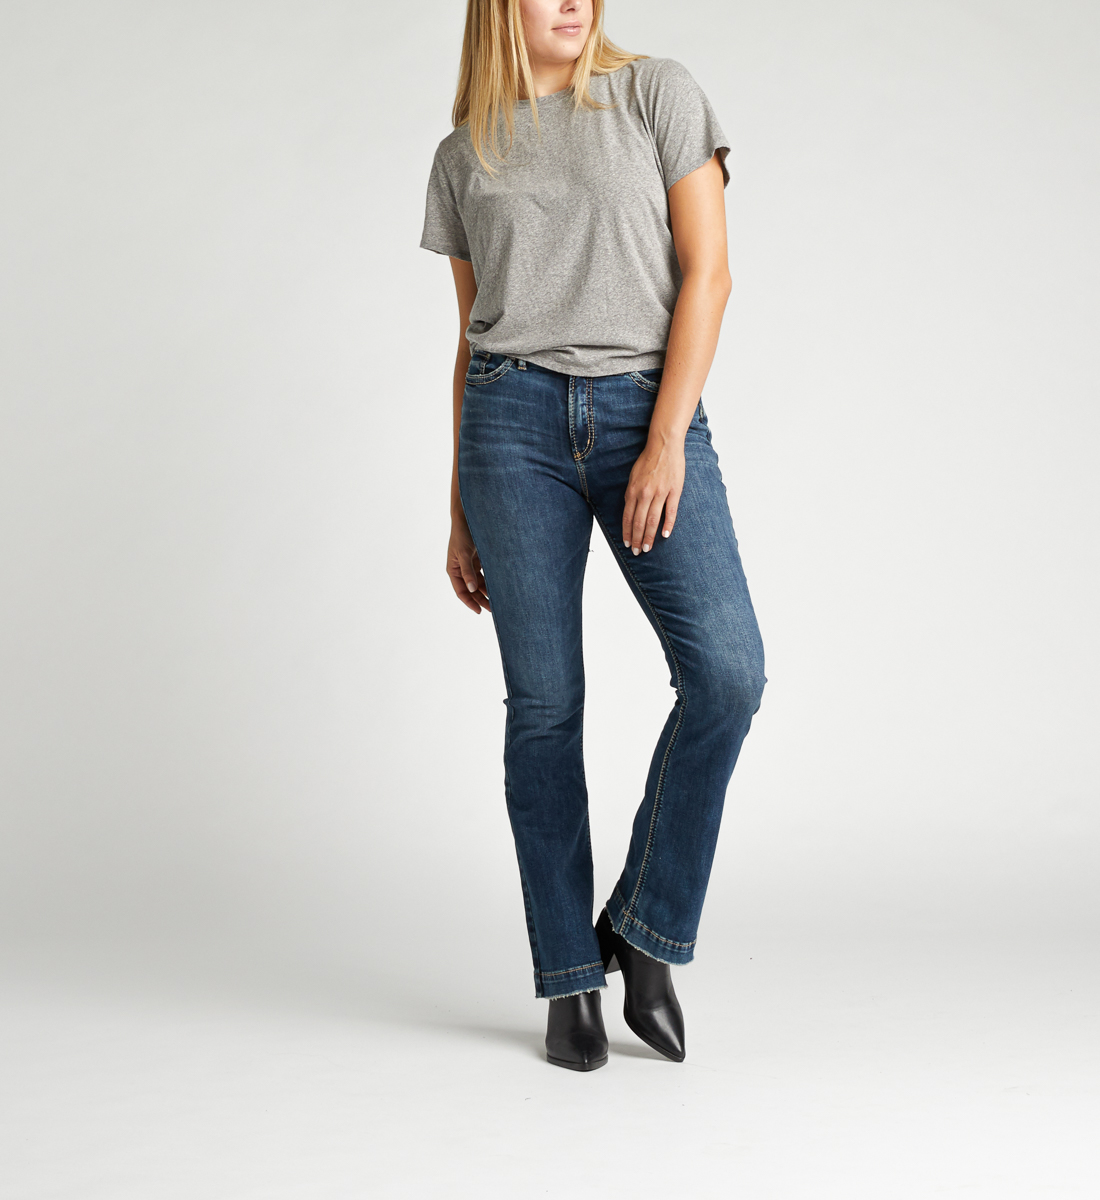 Silver Jeans Calley Super High Rise Bootcut Jeans